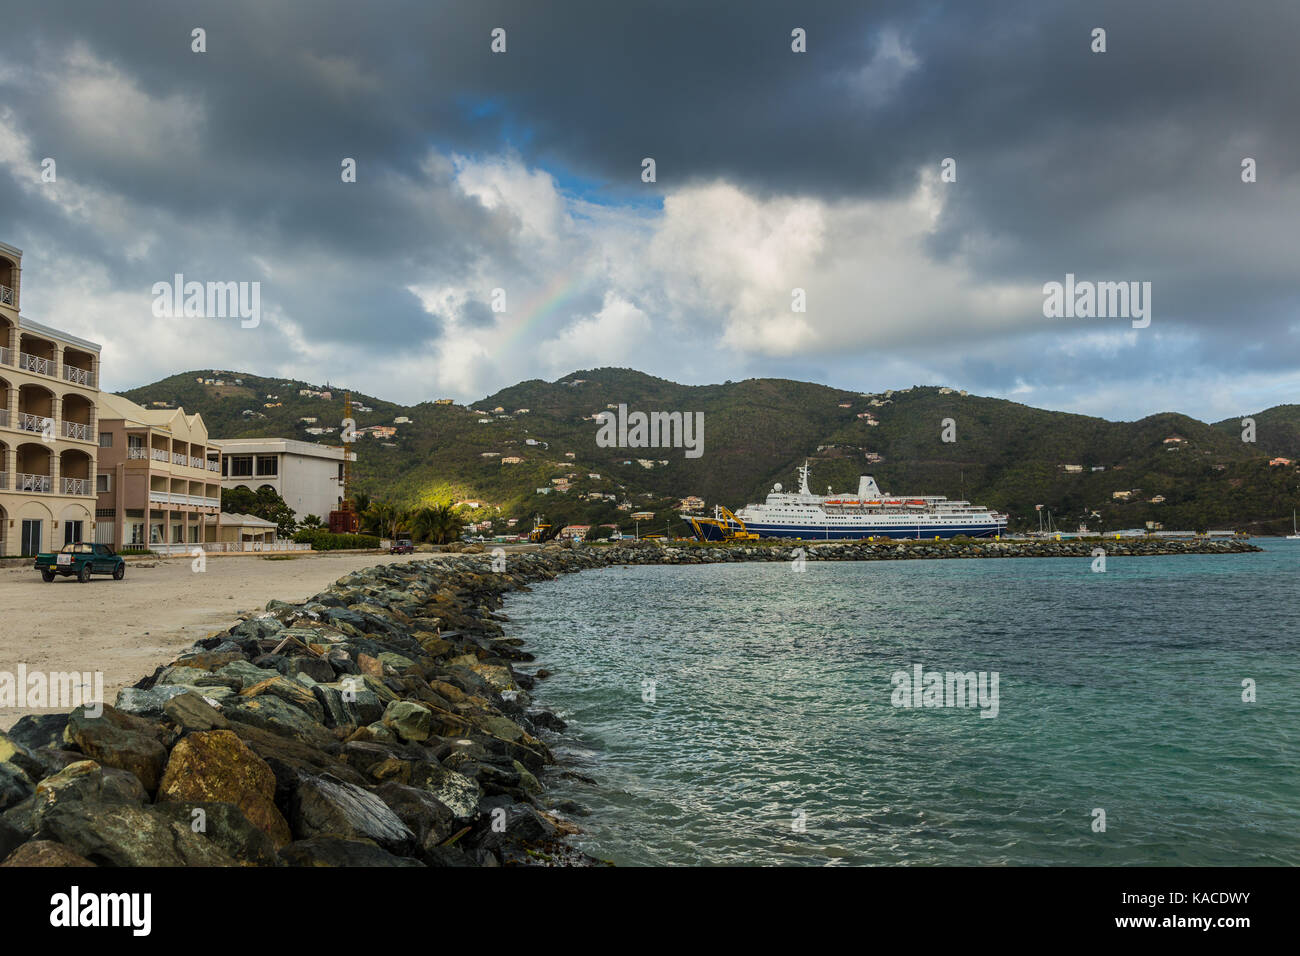 Marco Polo docked at Road Town, Tortola, British Virgin Islands - Stock Image